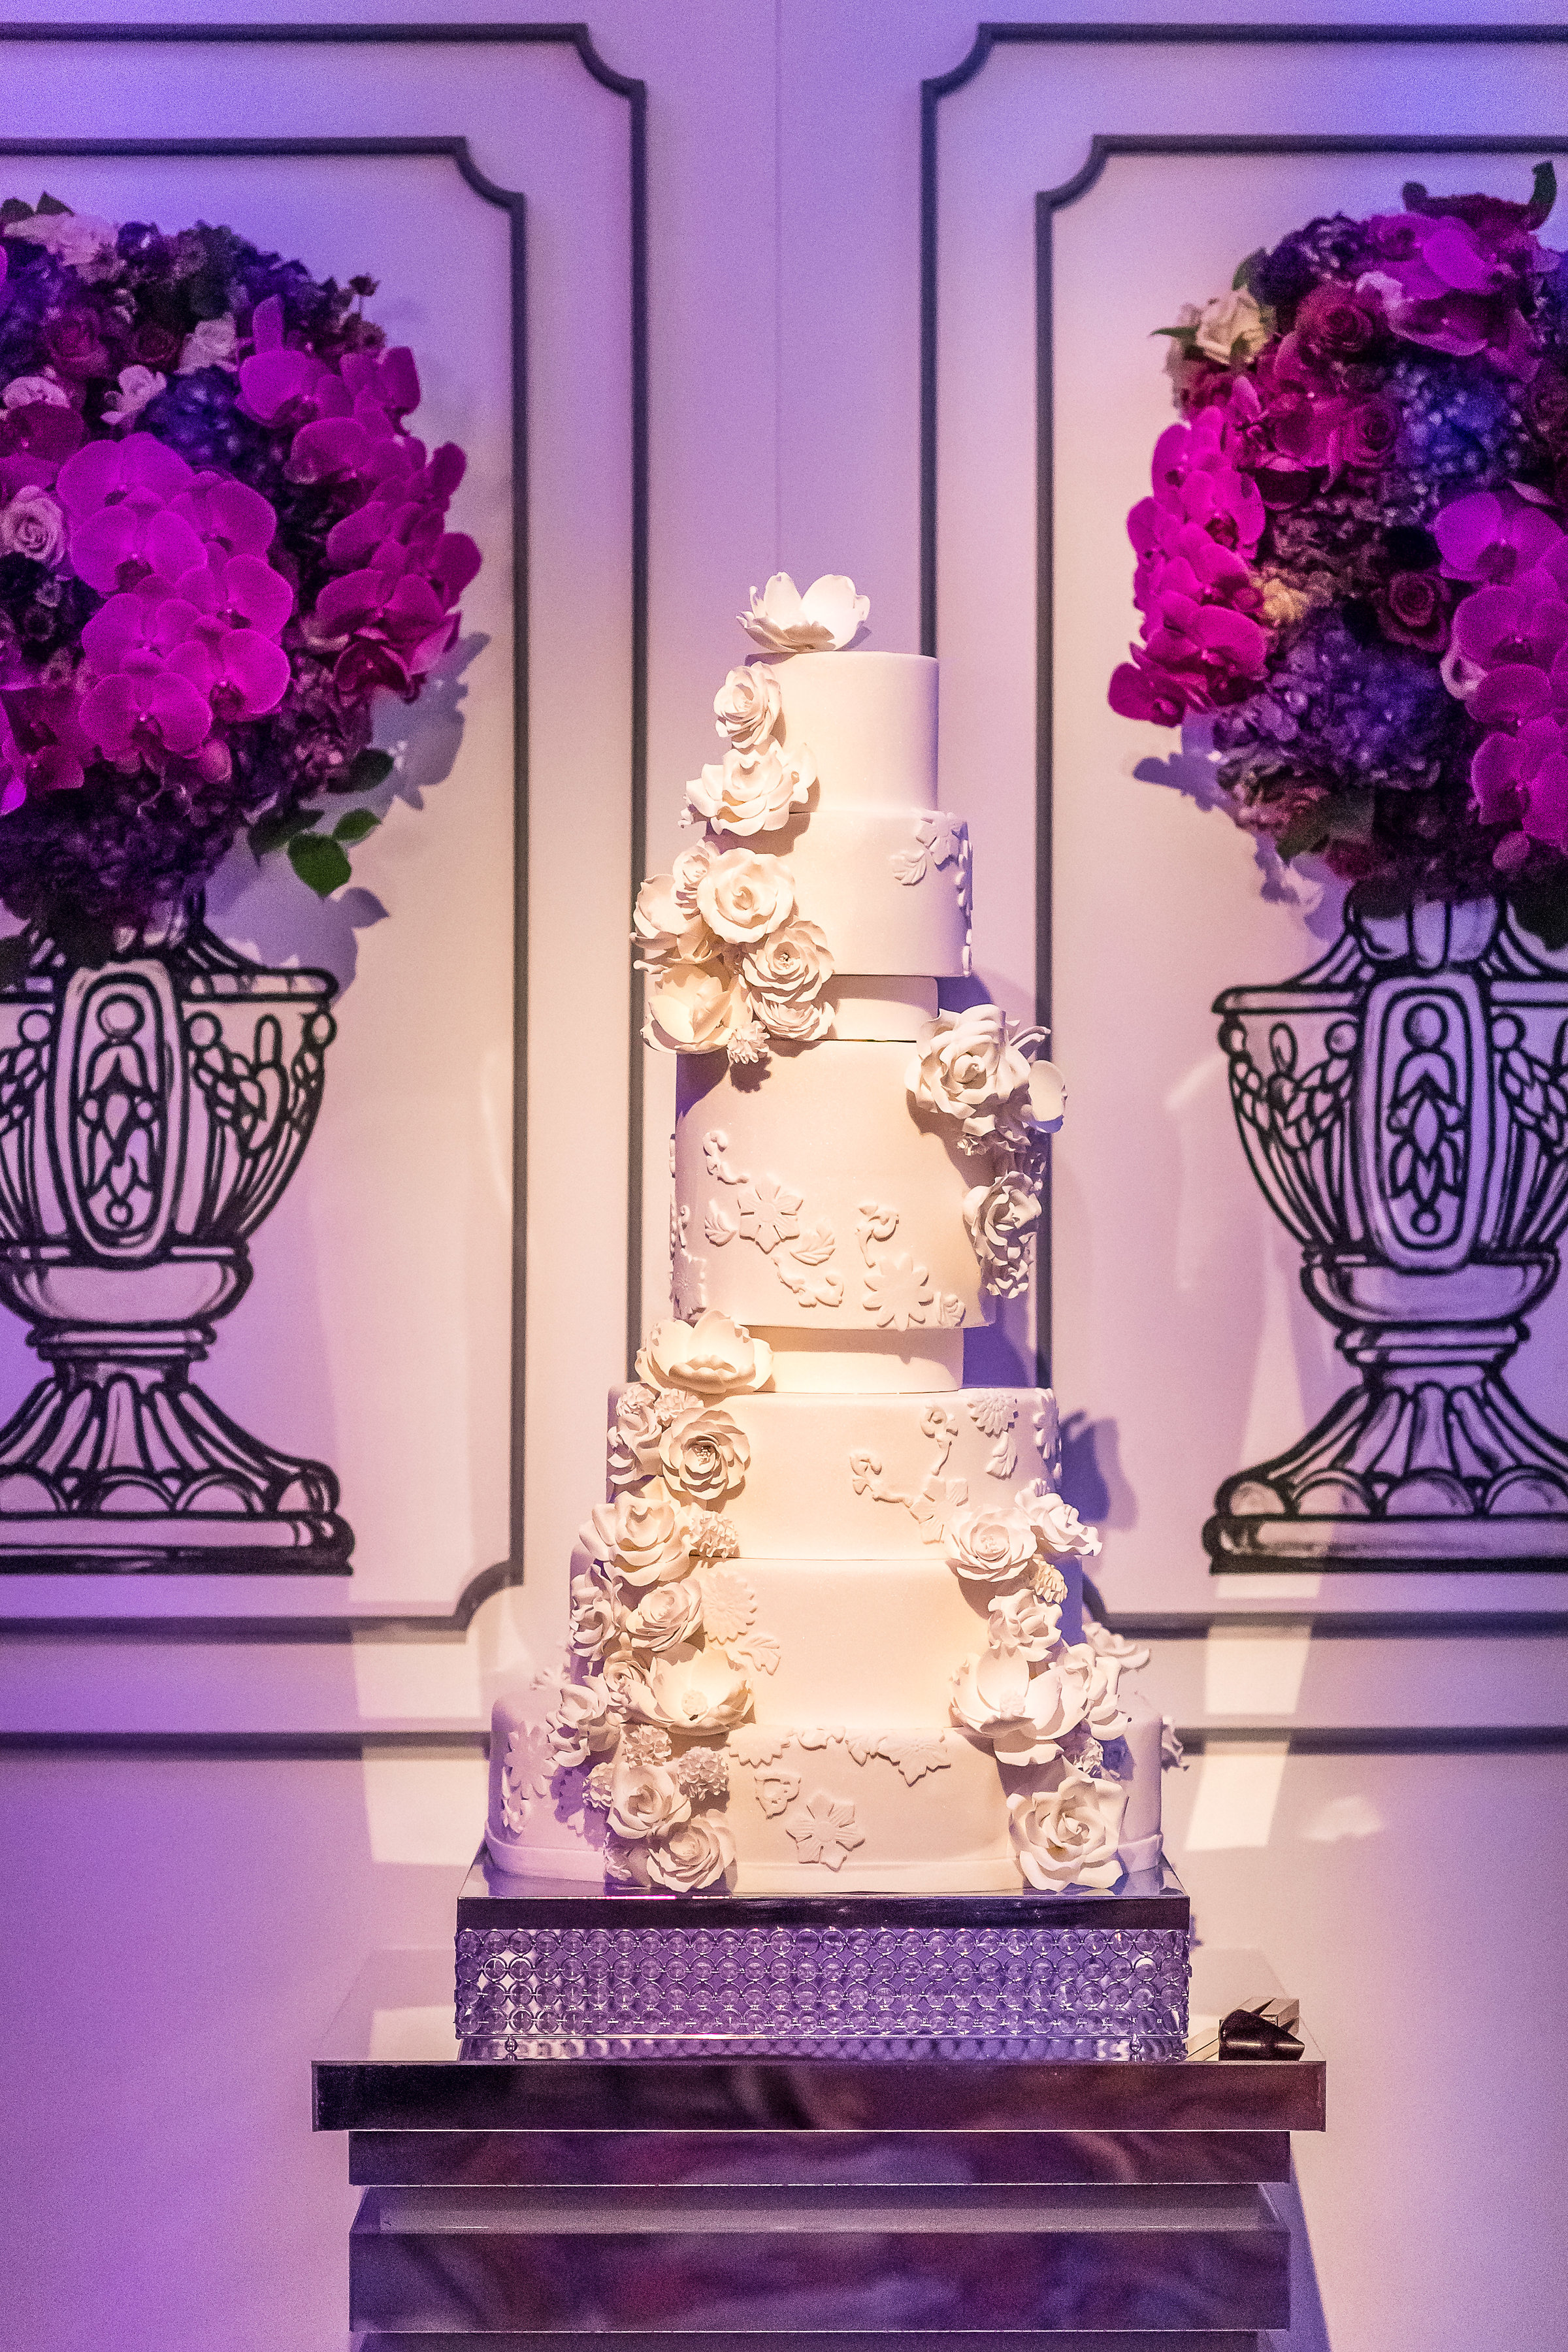 White wedding cake with lace fondant and sugar roses. Living flower wall.Wedding Planner: Andrea Eppolito Events    Photography  Brian Leahy    Videography  HOO Films    Venue & Catering:  Mandarin Oriental  / Waldorf Astoria   Floral & Decor: Destinations by Design    Lighting: LED Unplugged    Music:  DJ Breeze II    Hair & Make Up: Amelia C & Co    Invitations by  Bliss & Bone    Menu and Escort Cards by  Meldeen